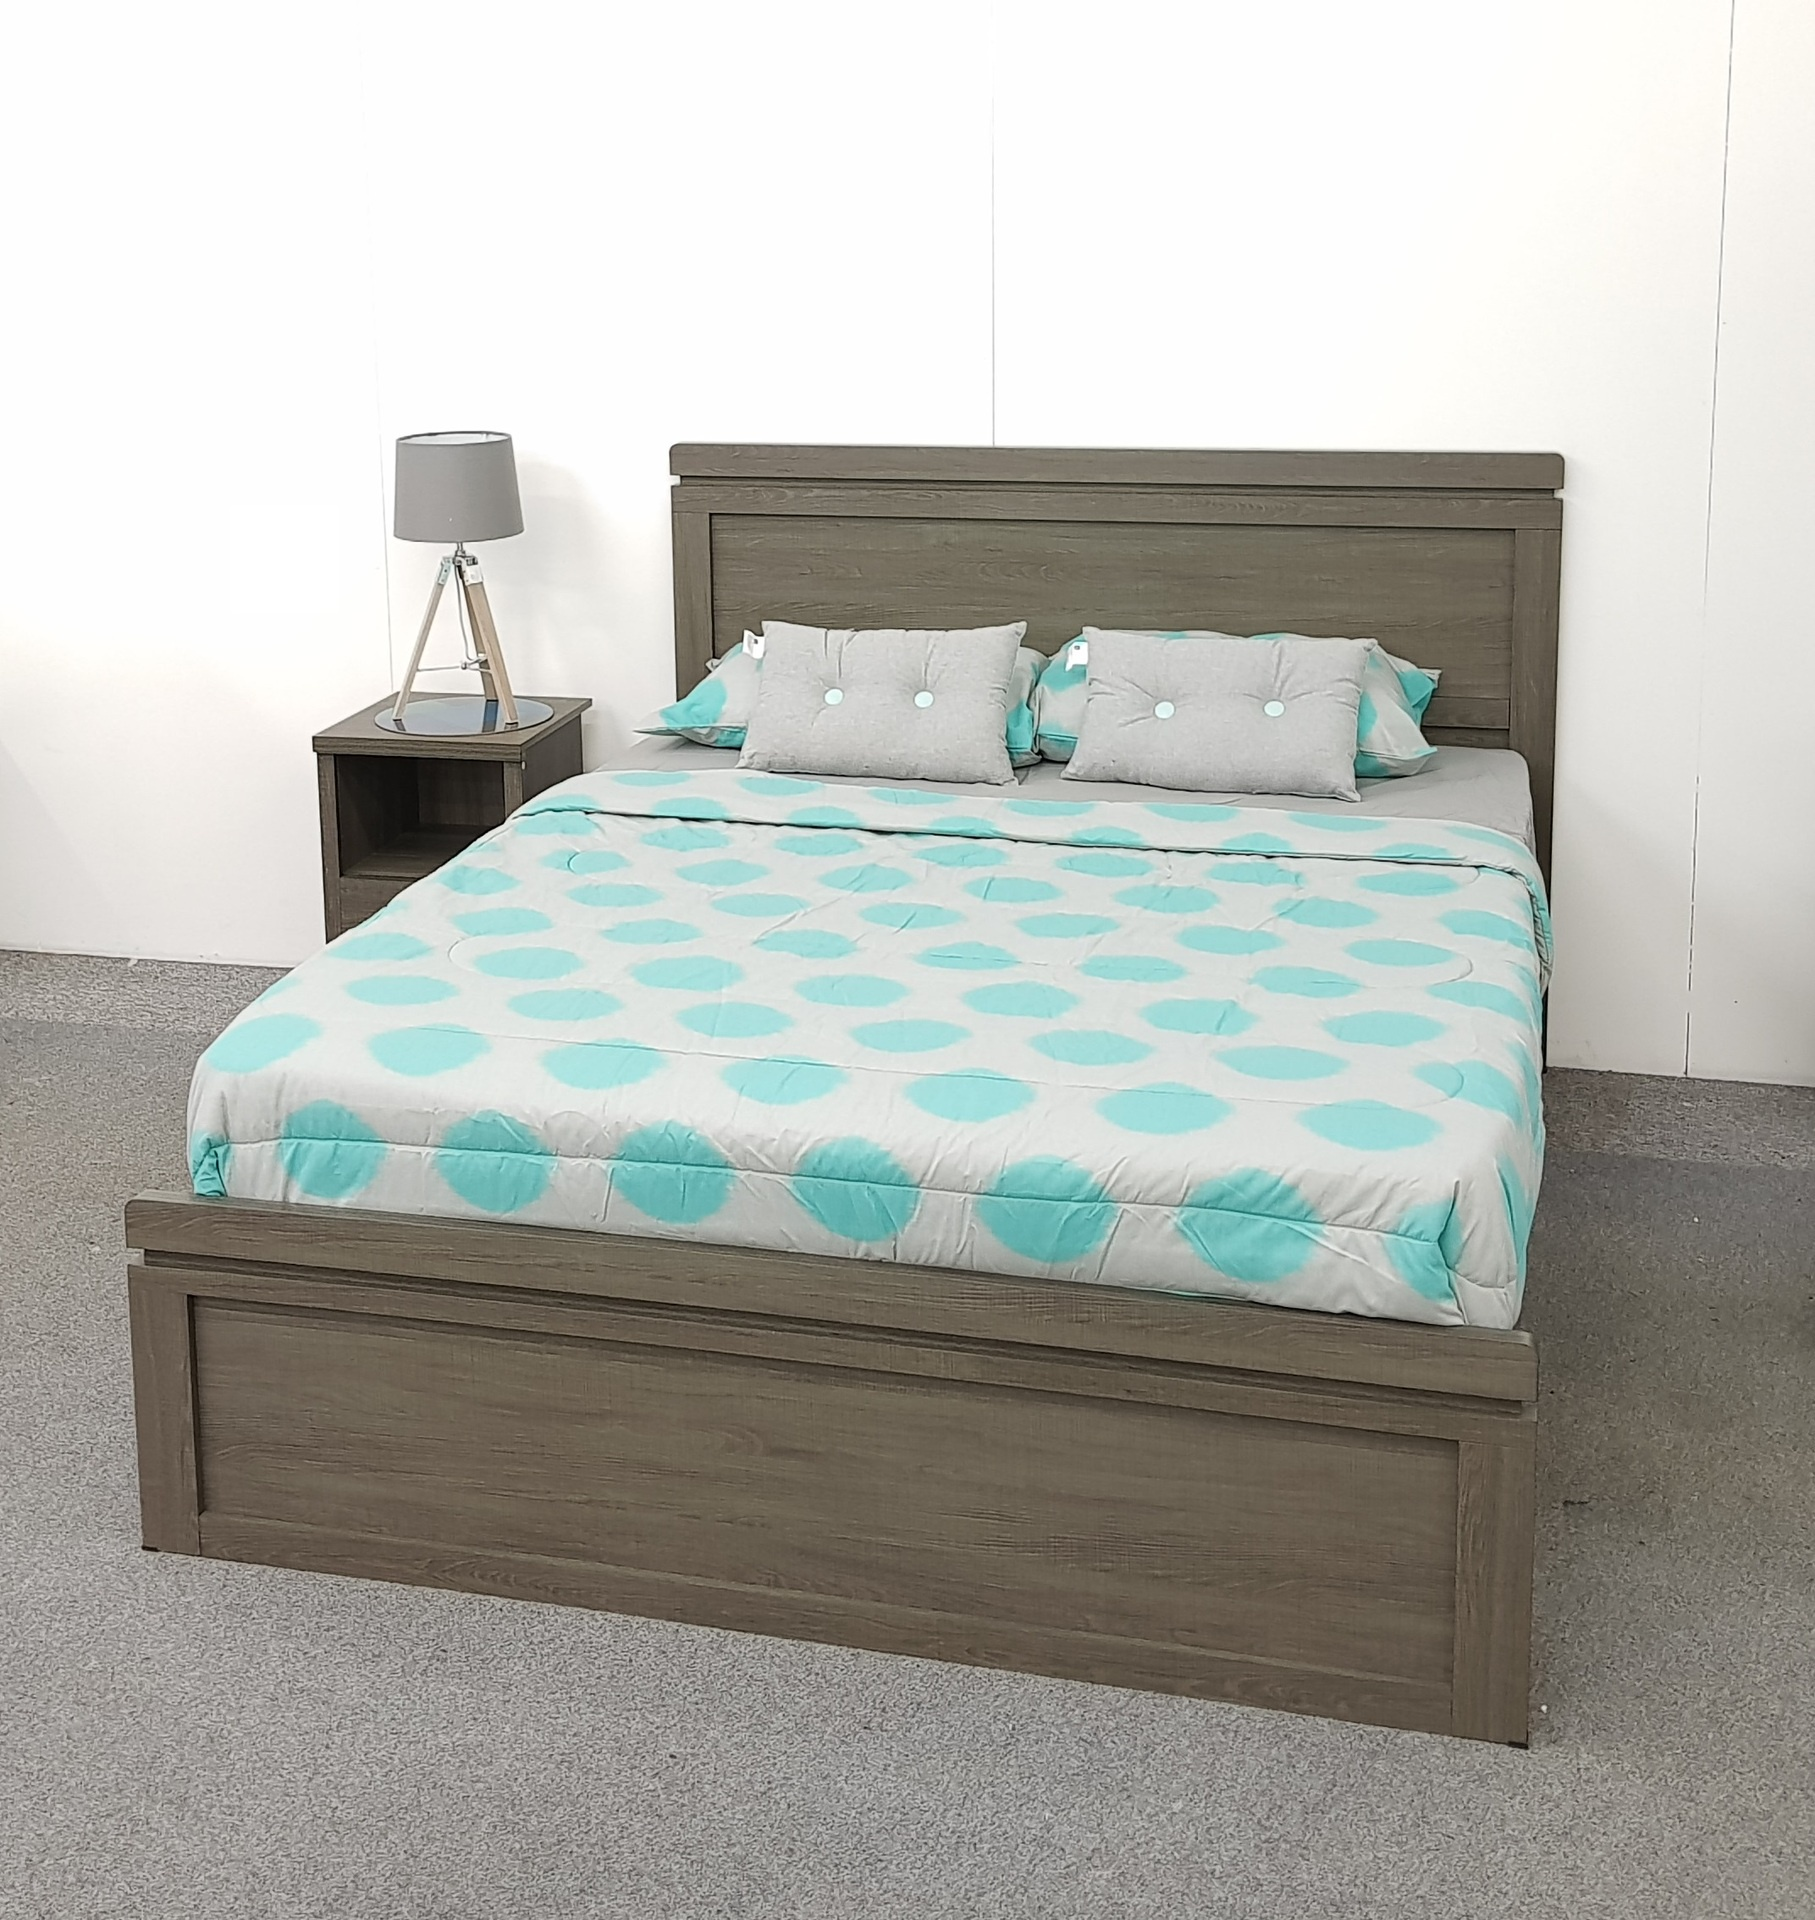 original bed french frame grey lfe collection inspiration emily